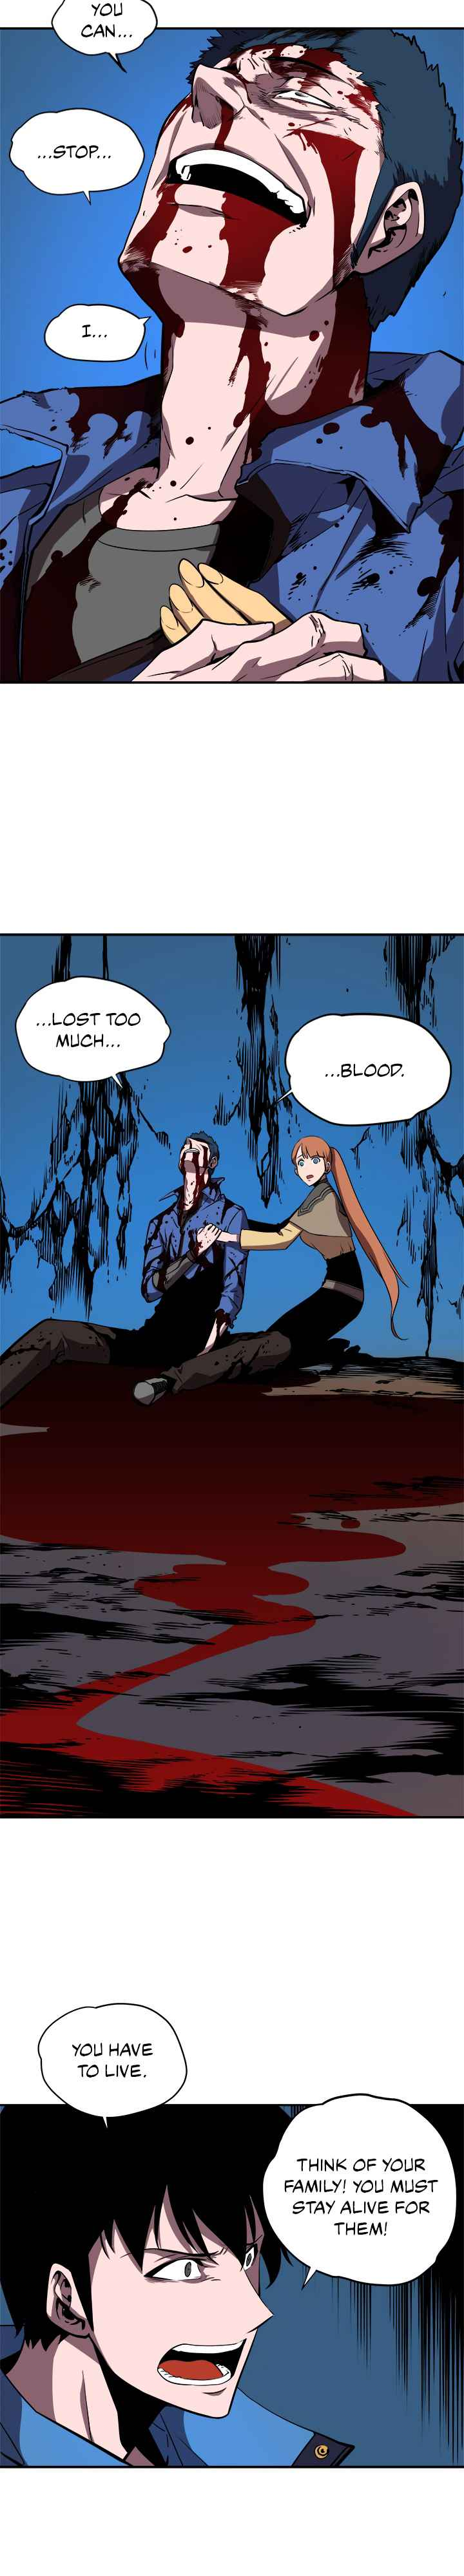 Solo Leveling Chapter 30 Page 18